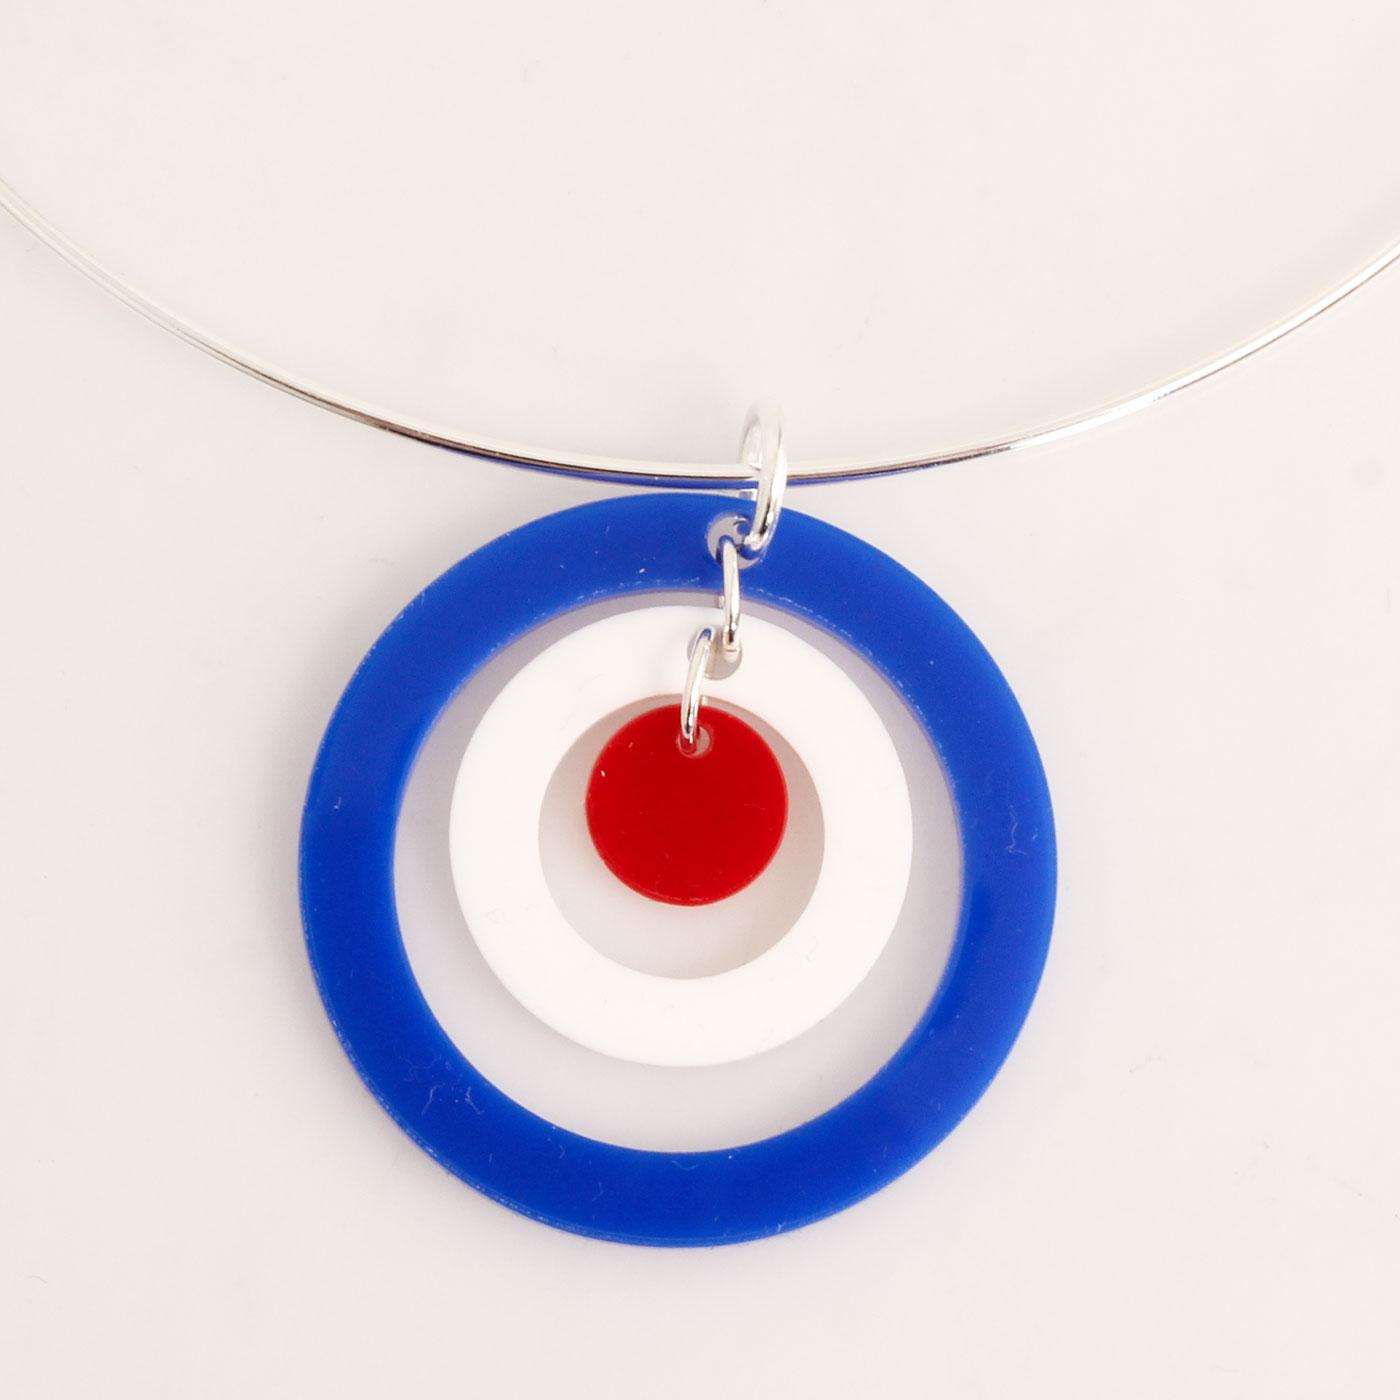 Ada Binks for Madcap England 60s Mod Concentric Circles Choker Necklace in Red/White/Blue